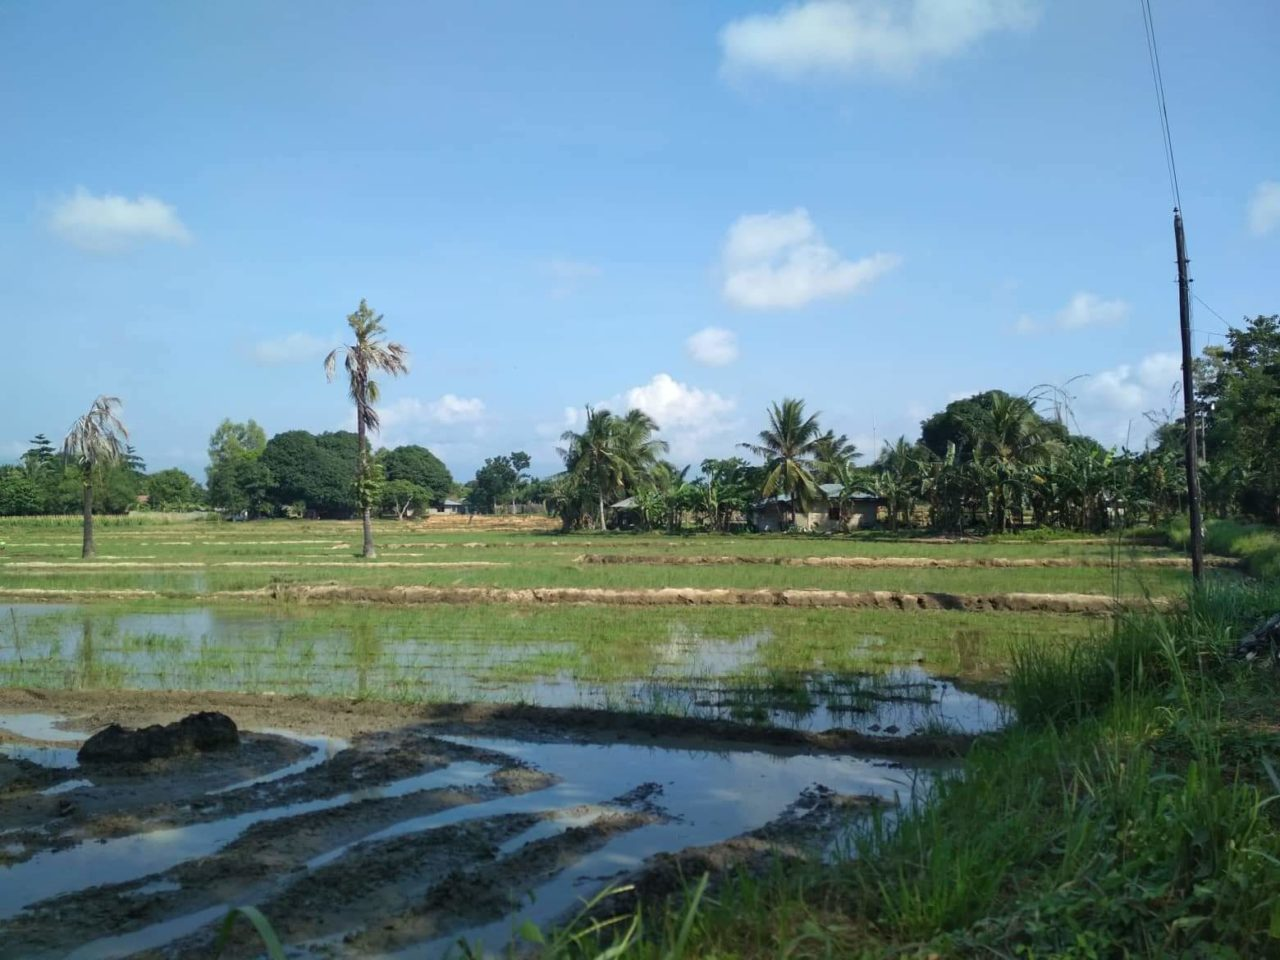 The Village Land in the Philipines